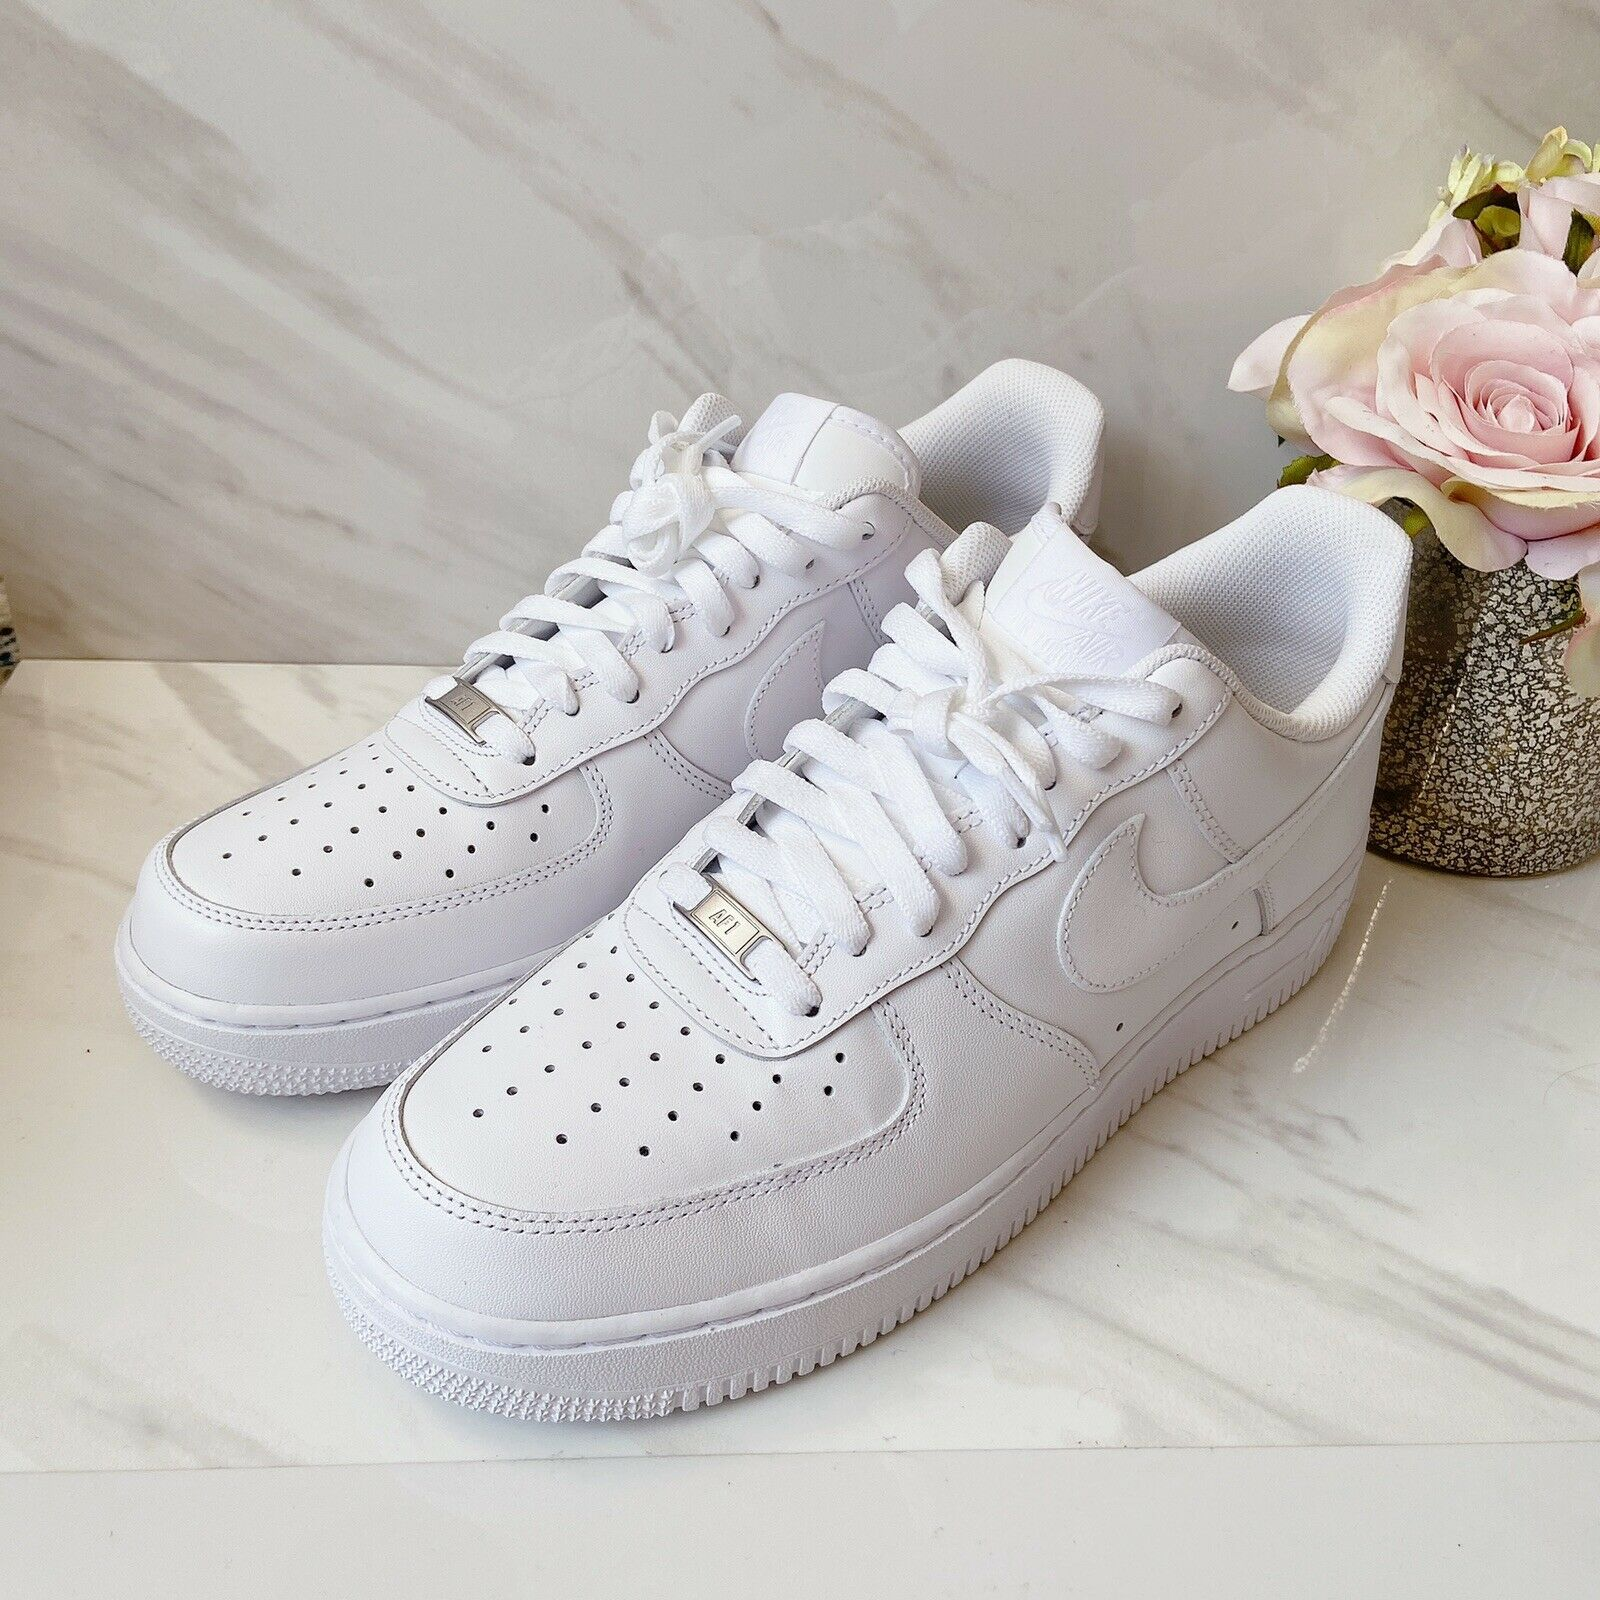 Nike Air Force 1 Low White 2014 GS